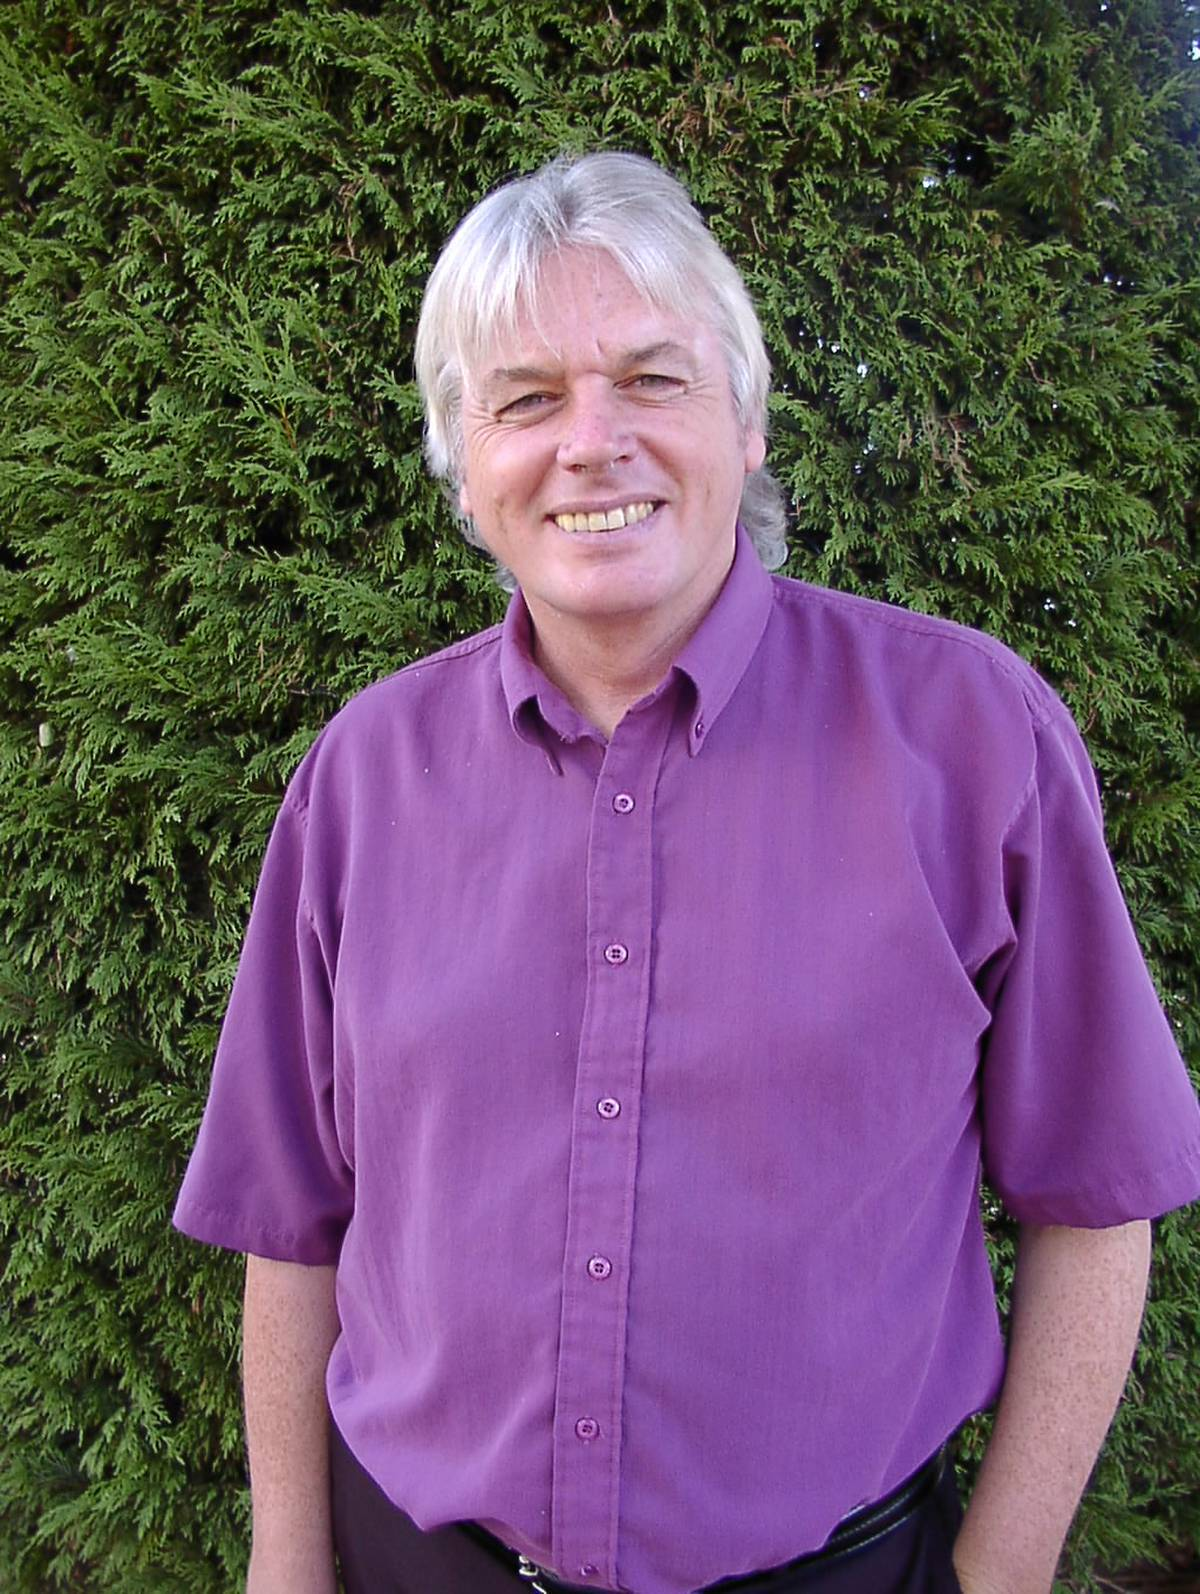 David Icke, the reptilian race conspiracy theorist, causes a